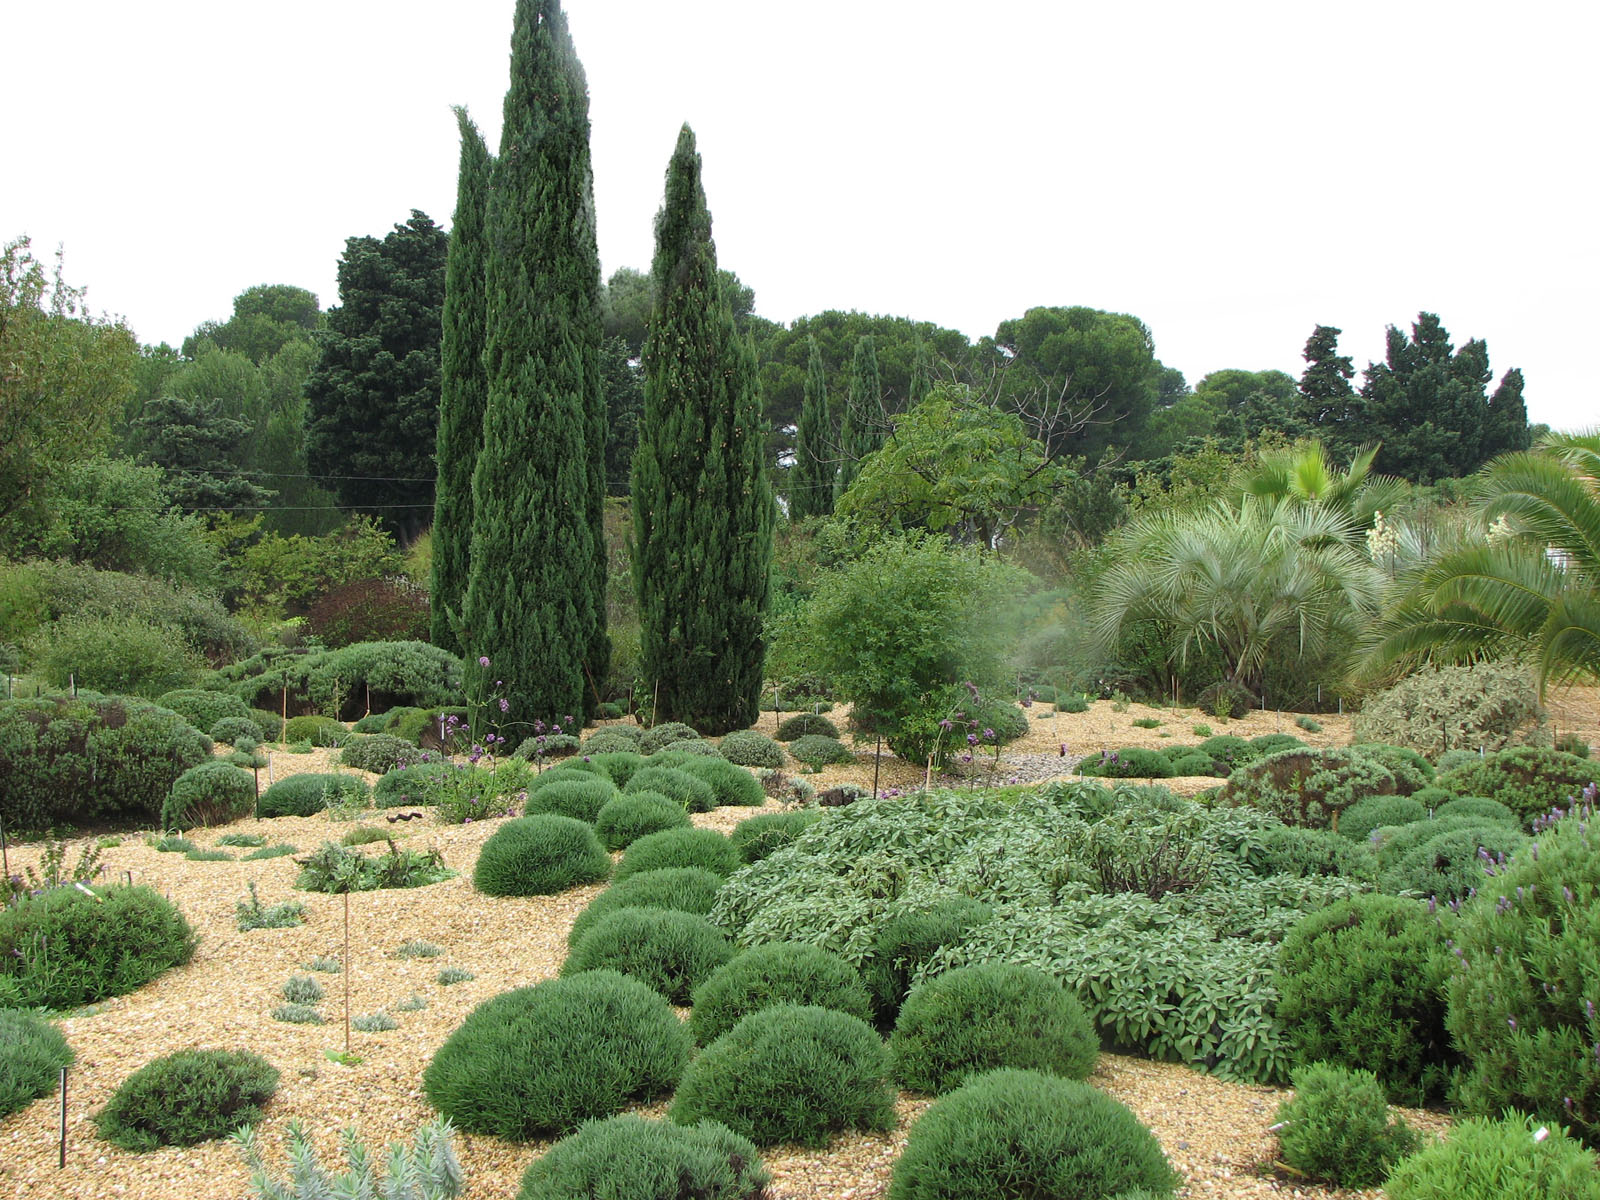 Xeriscape in france_by_Seán A. O'Hara